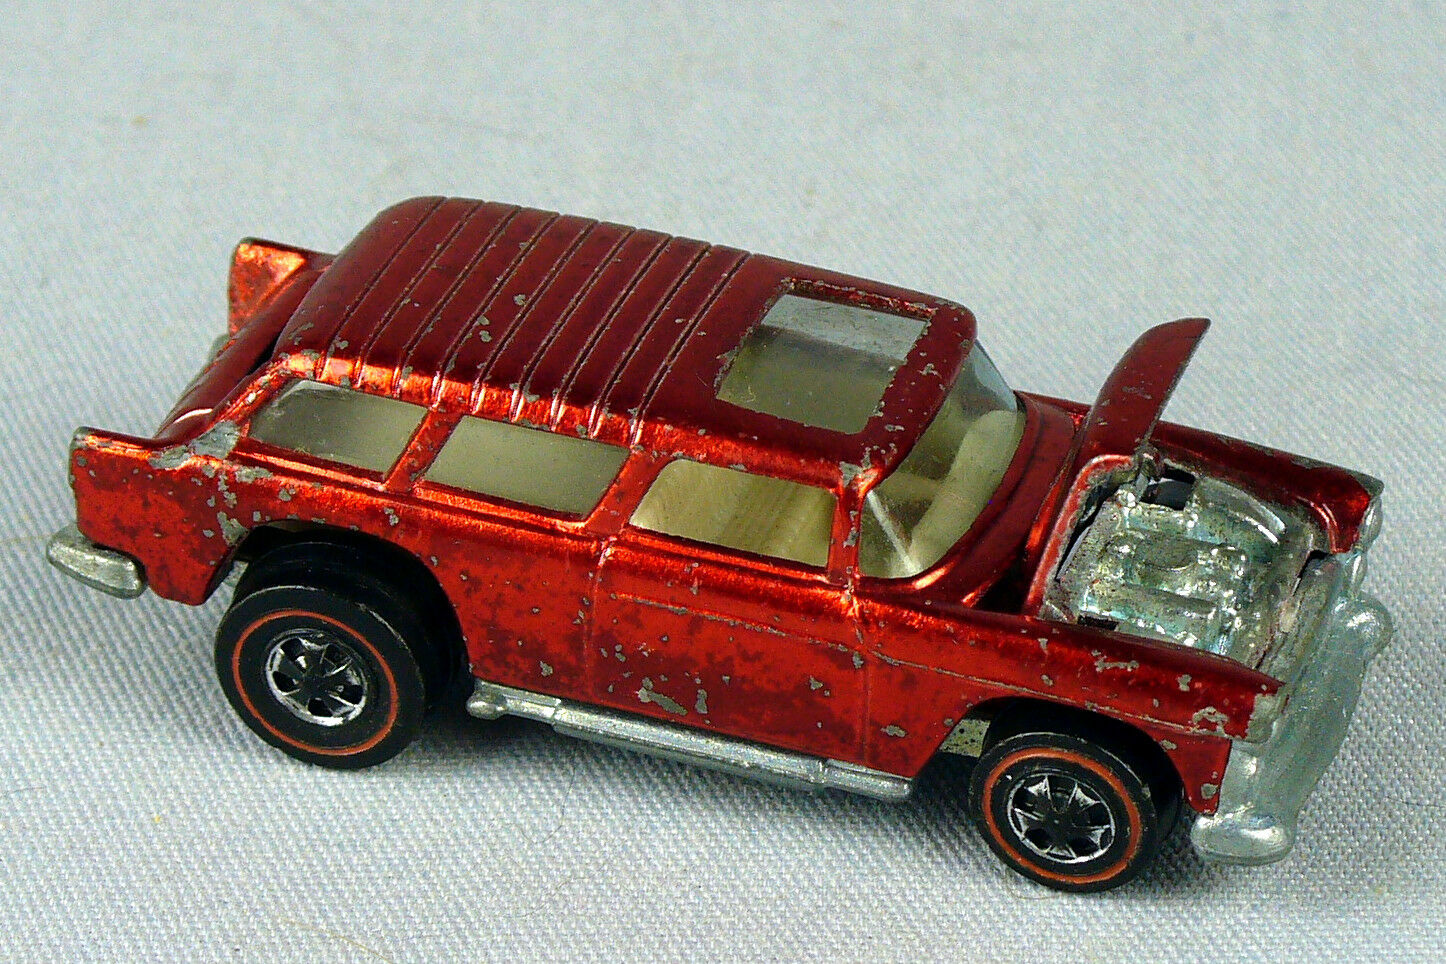 VINTAGE HOT WHEELS REDLINE CLASSIC NOMAD METALLIC RED 1969 USA